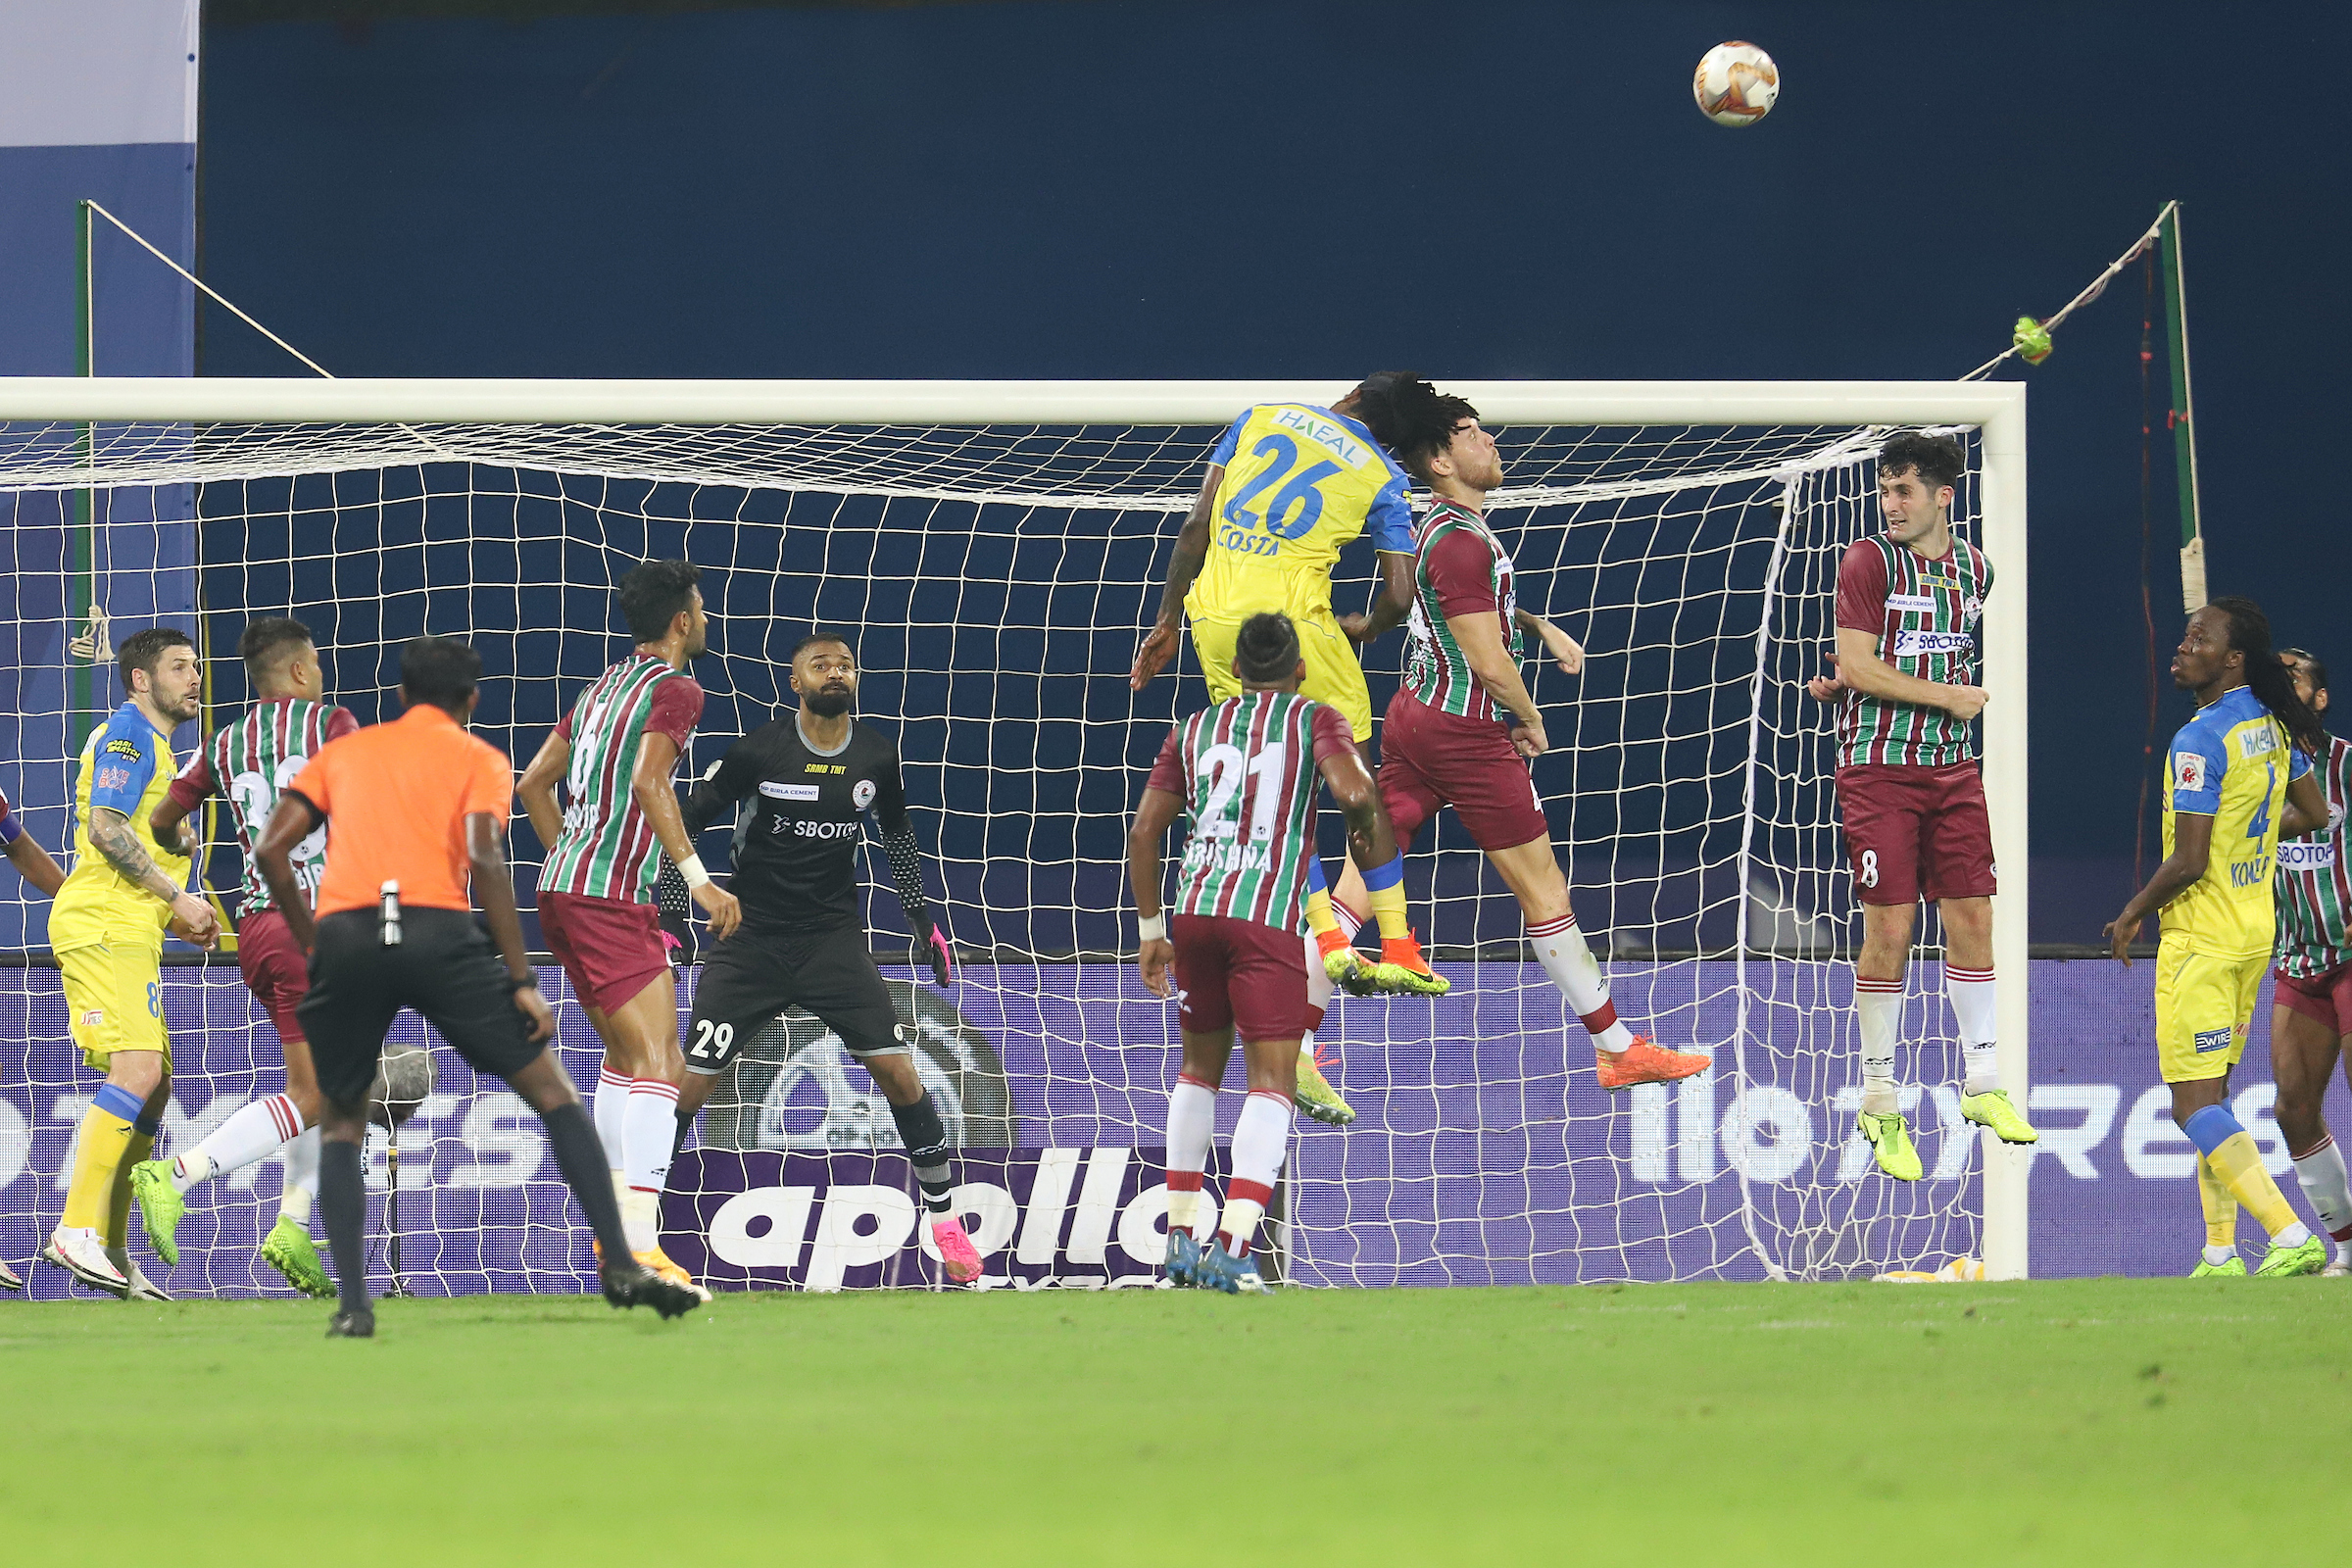 Costa Nhamoinesu of Kerala Blasters FC try to heads the ball during match 1 of the 7th season of the Hero Indian Super League between Kerala Blasters FC and ATK Mohun Bagan held at the GMC Stadium, Bambolim, Goa, India on the 20th November 2020 Photo by Faheem Hussain / Sportzpics for ISL